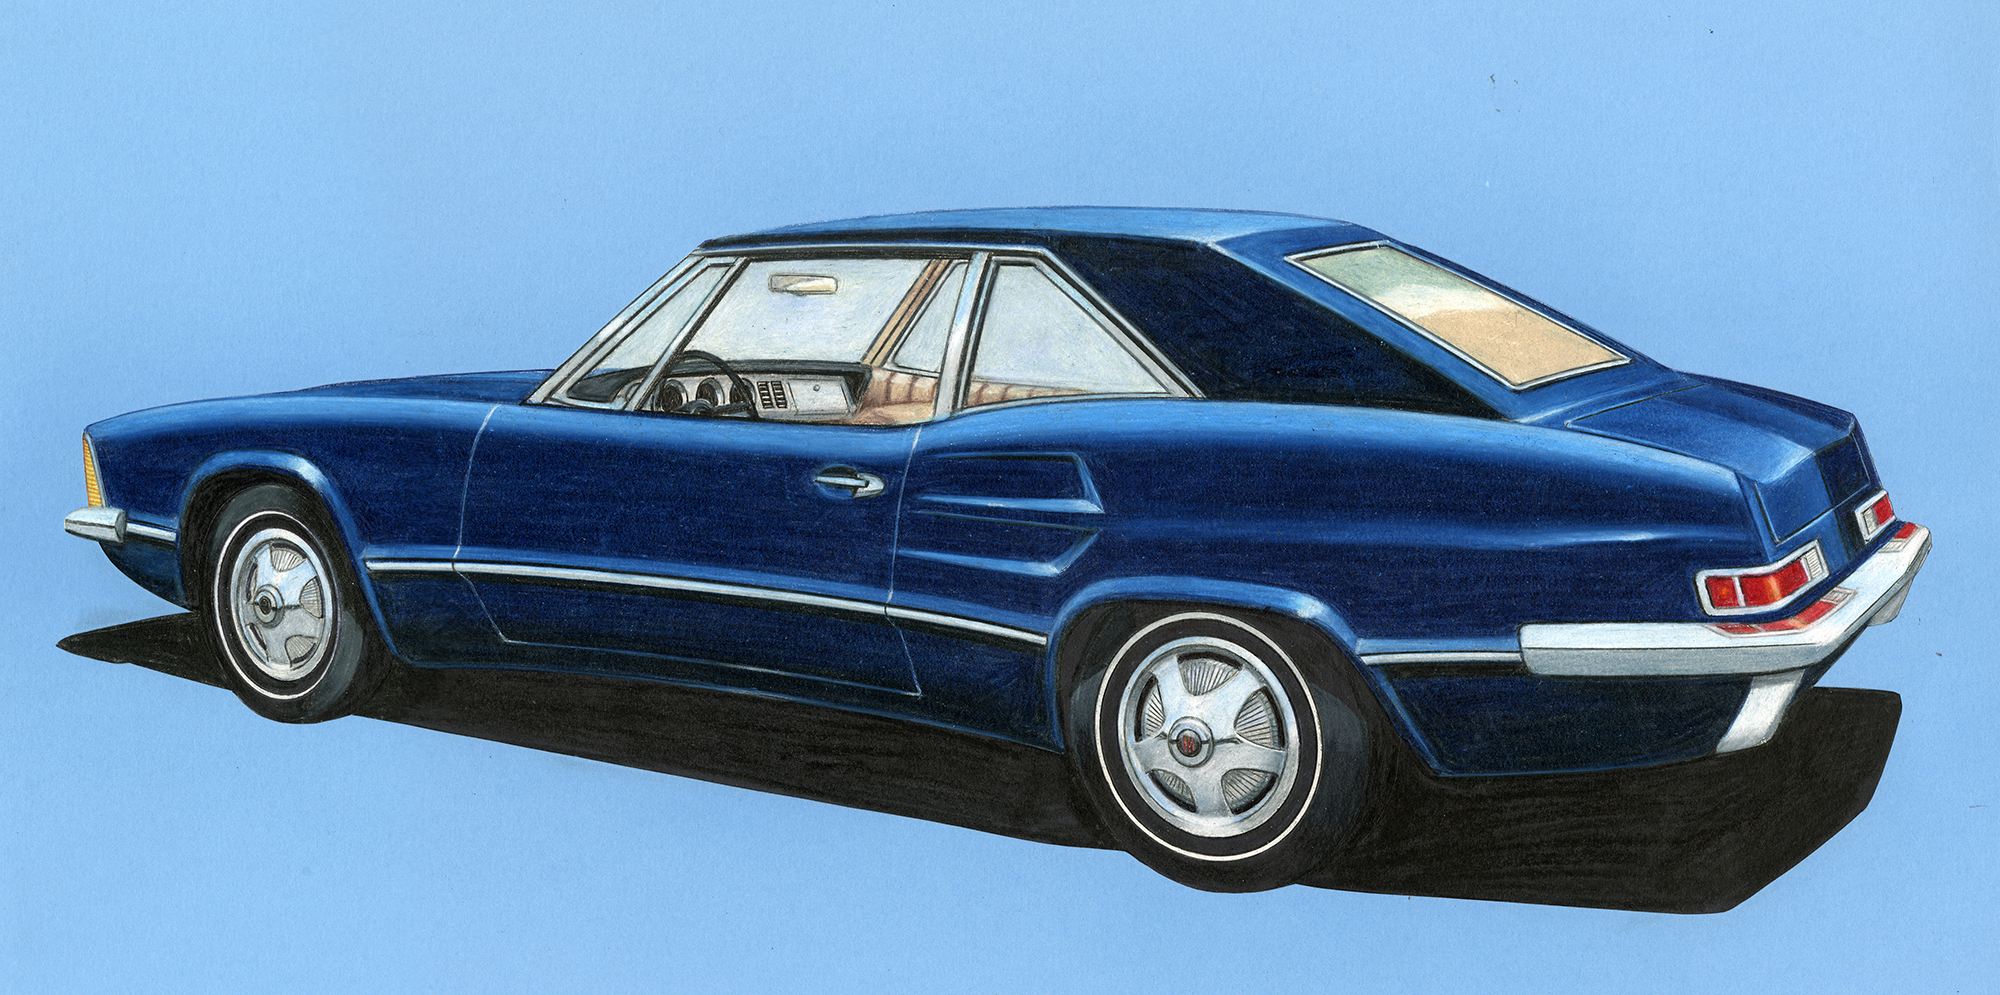 1963 Buick Riviera by Studebaker